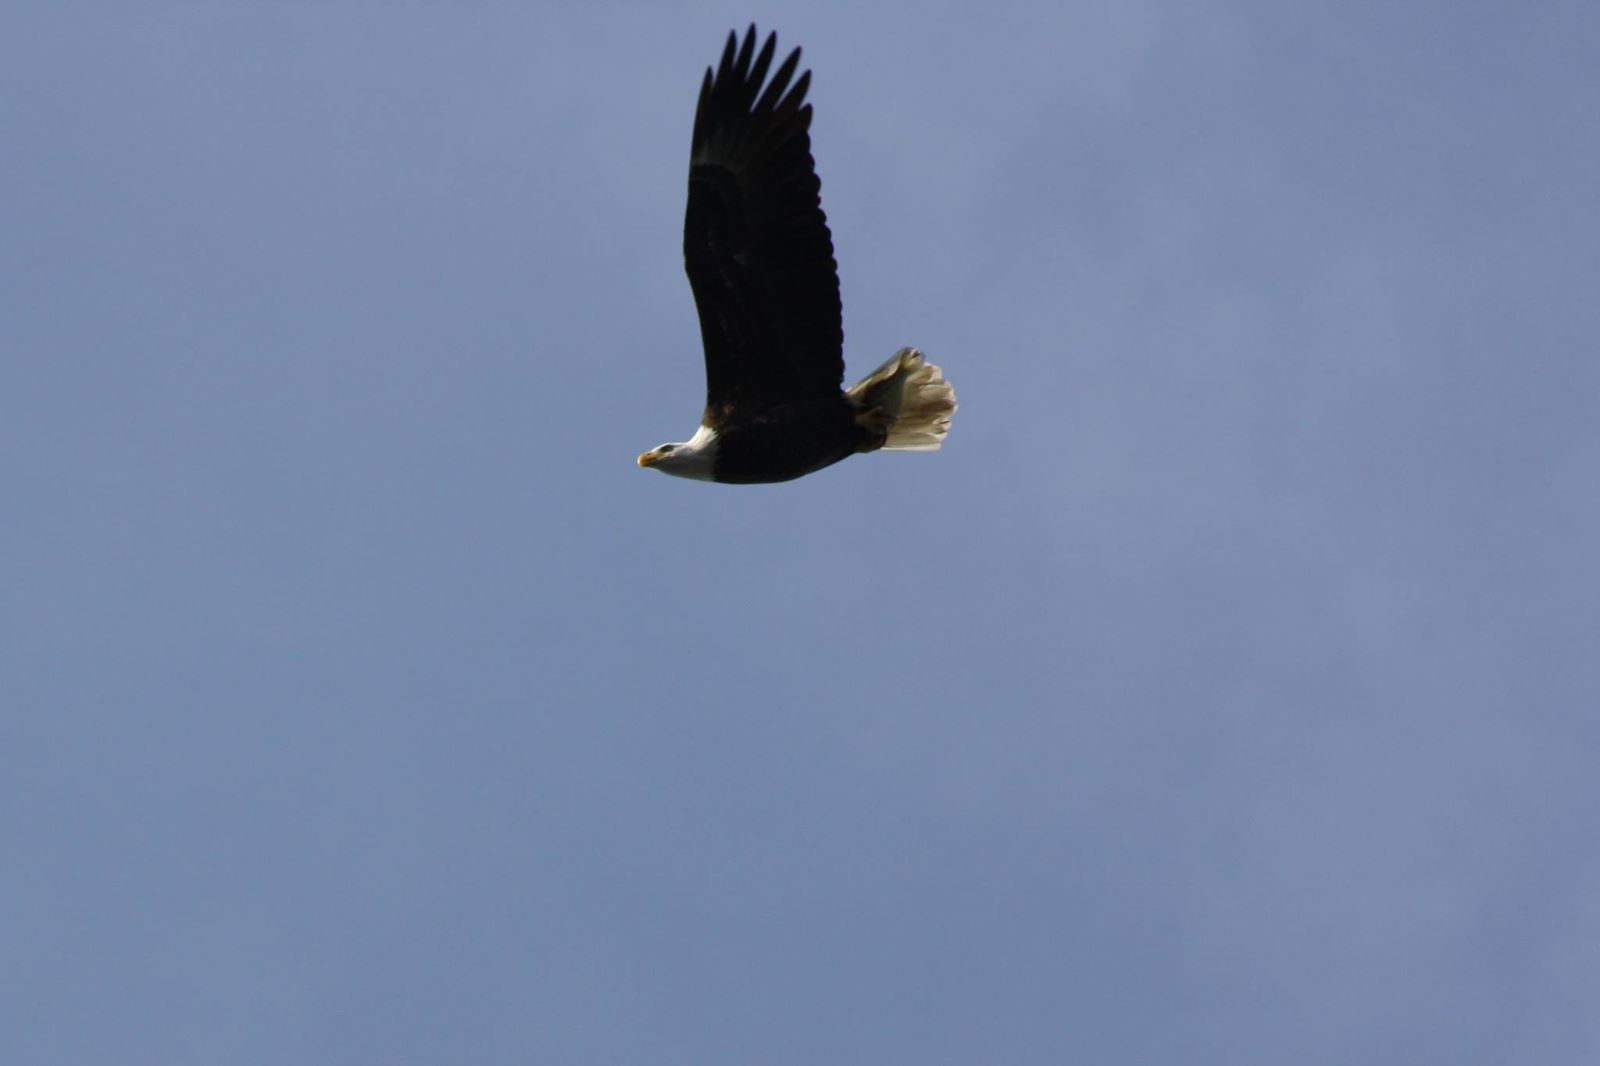 My own picture of a bald eagle at Conowingo Dam